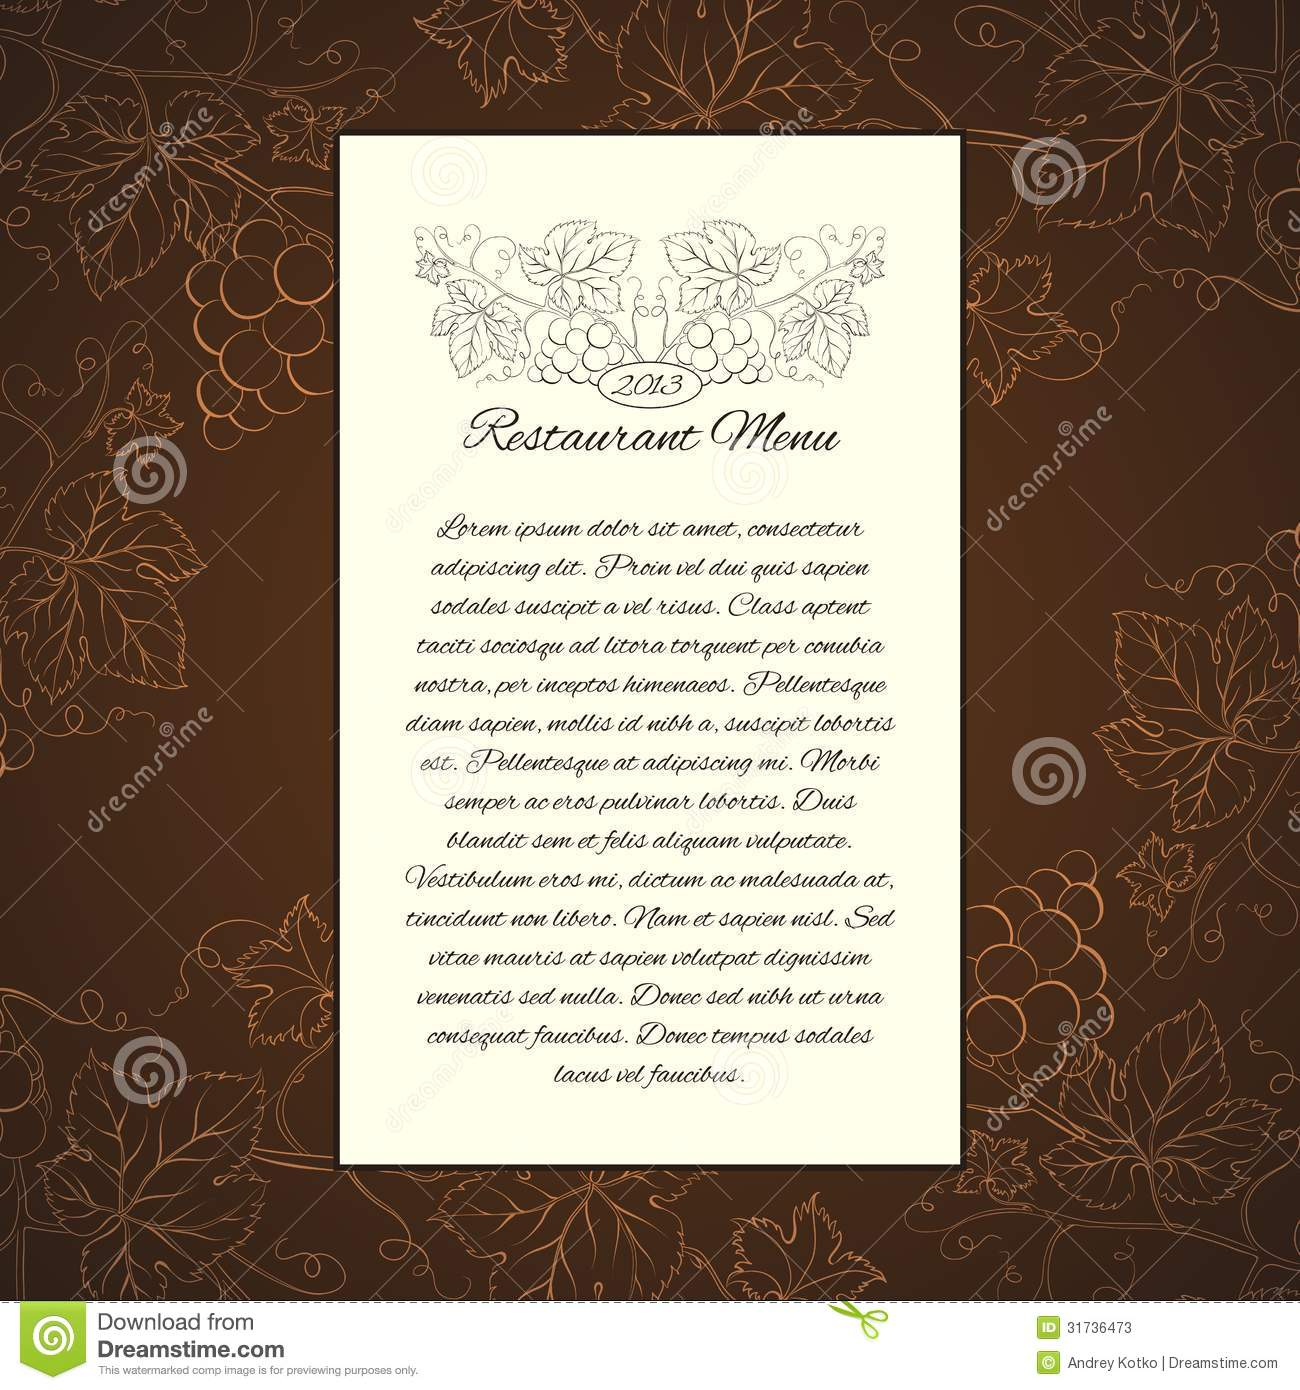 wine menu card template stock vector illustration of healthy 31736473. Black Bedroom Furniture Sets. Home Design Ideas